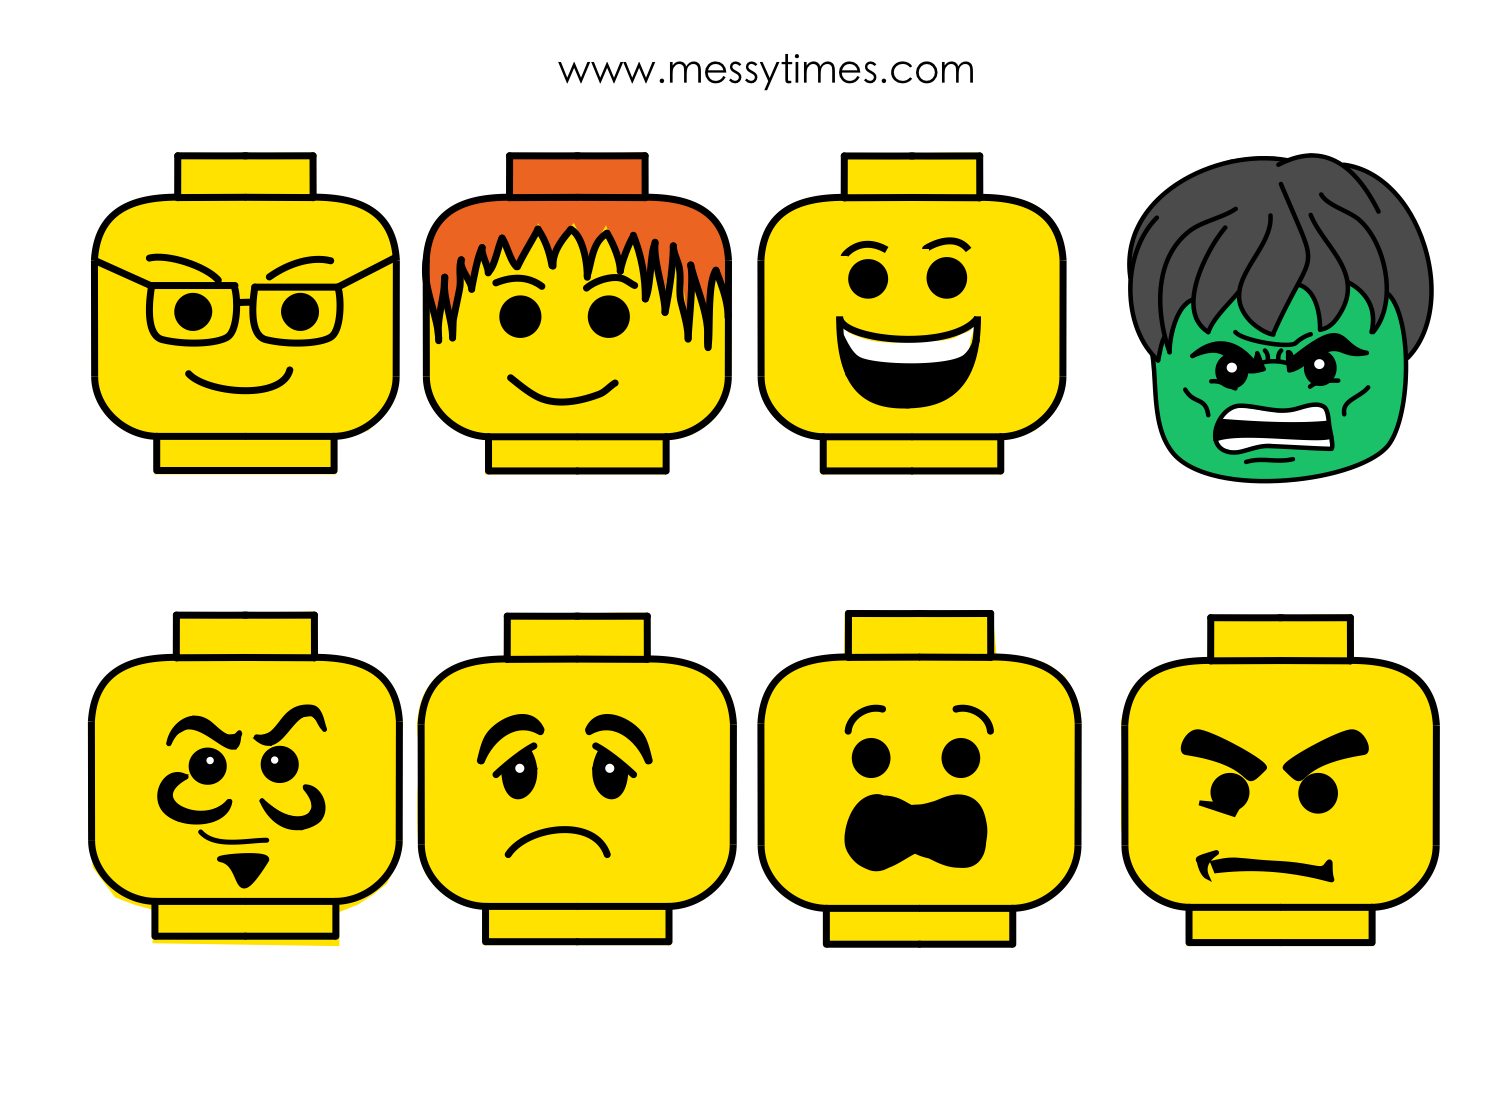 photograph regarding Lego Head Printable titled Lego Mind Clipart Black And White